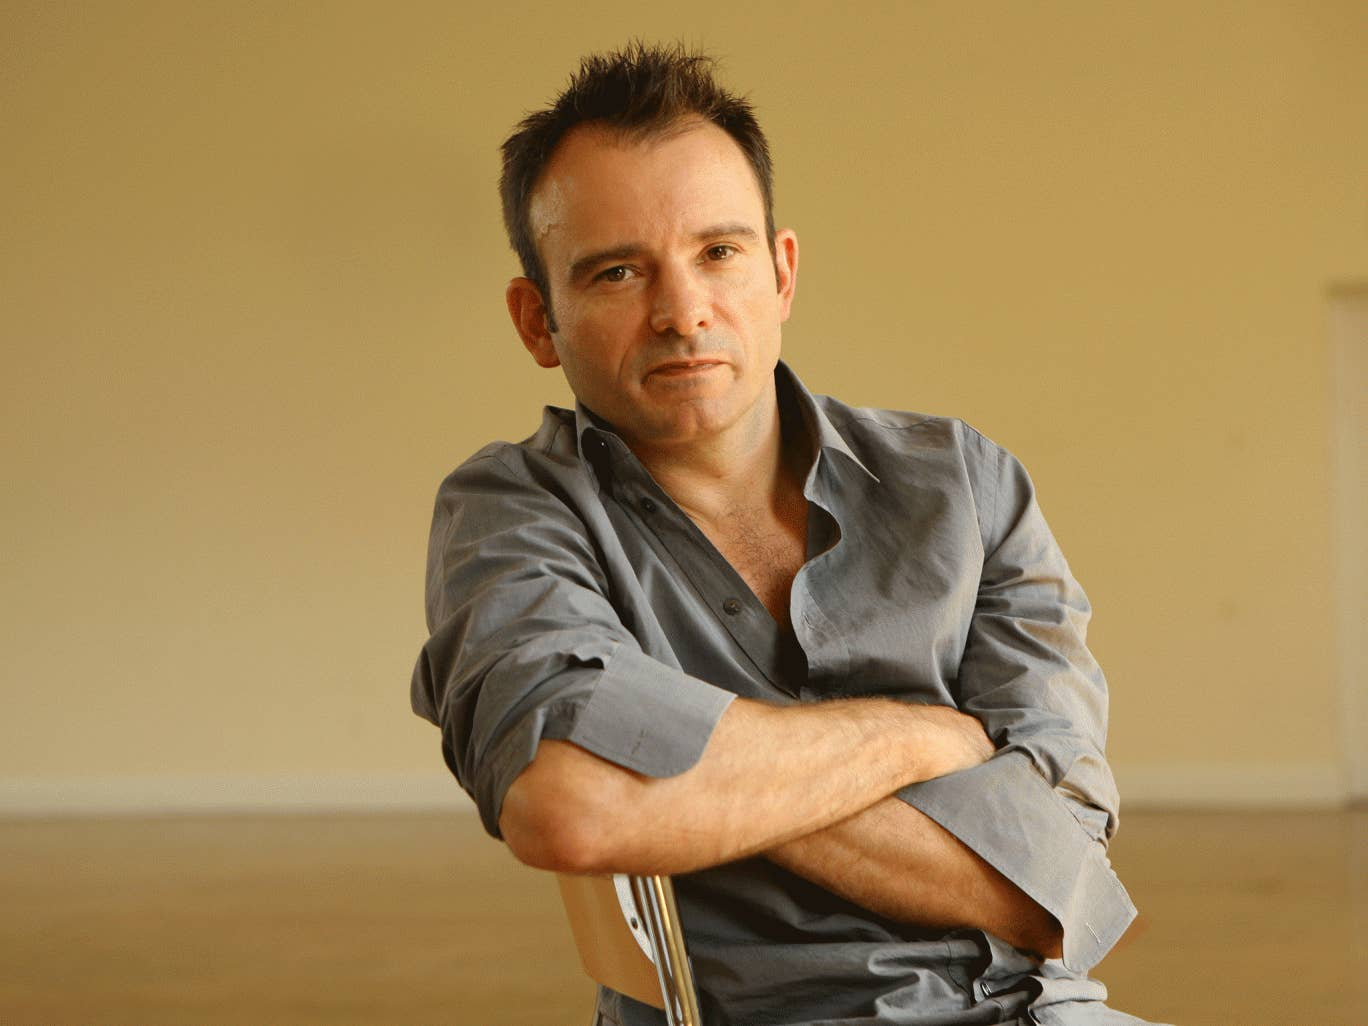 Matthew Warchus will take over from Kevin Spacey as artistic director of the Old Vic theatre in autumn 2015